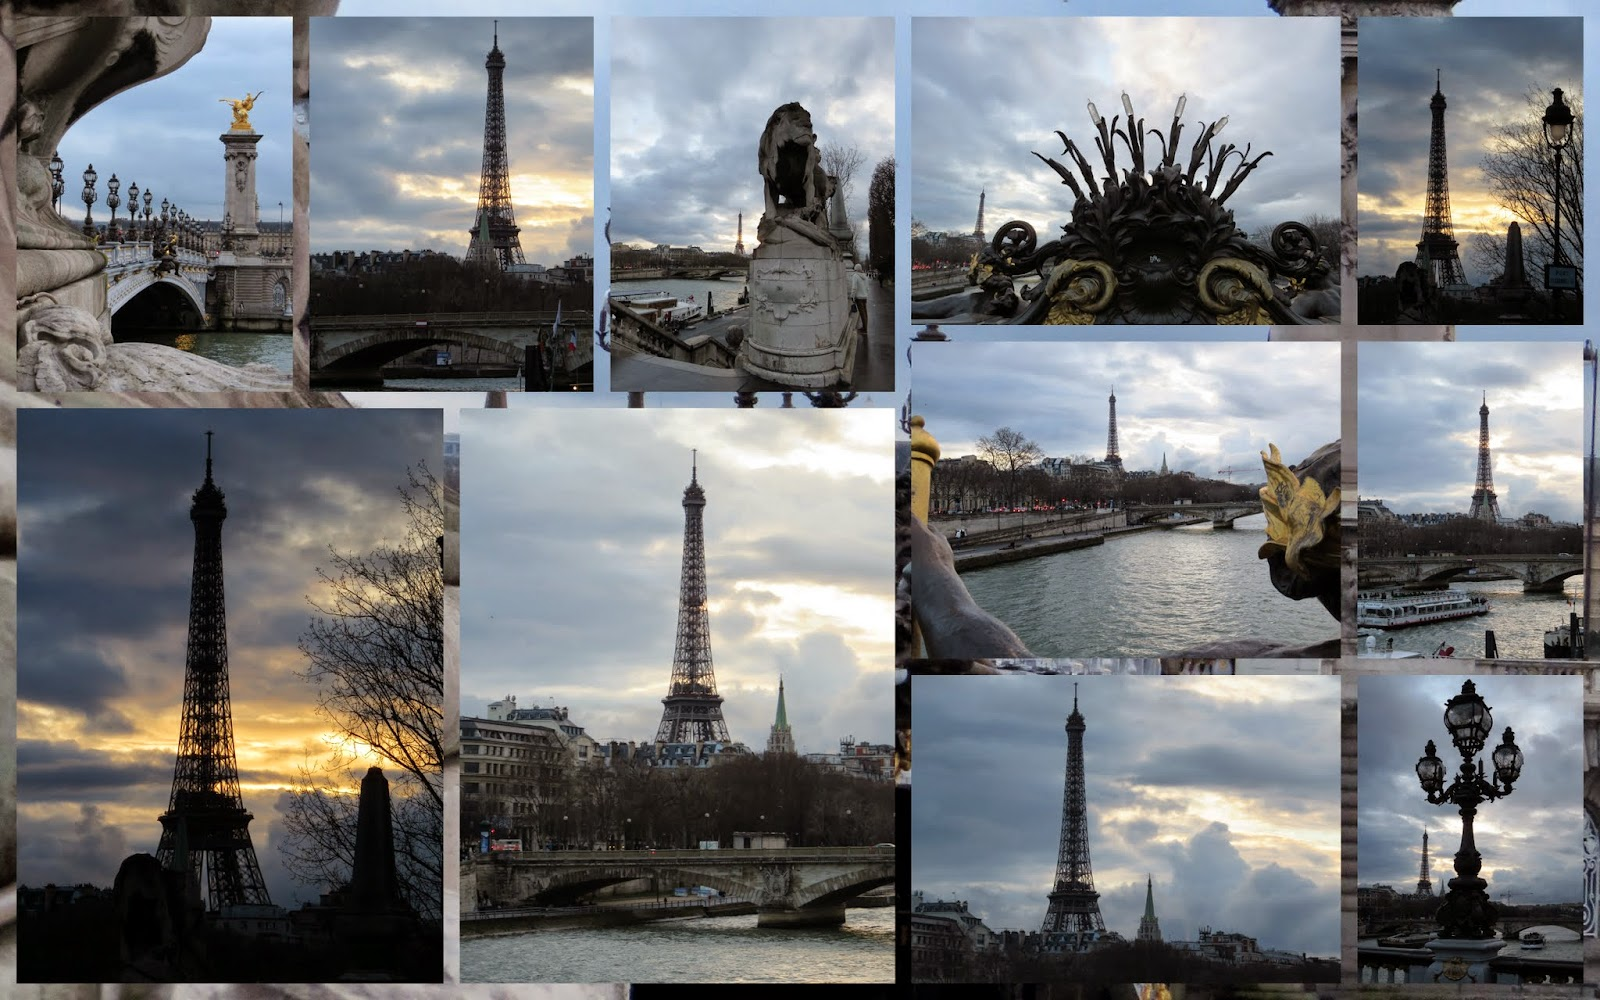 Valentine's Day Weekend in Paris - Sunset over the Eiffel Tower from Pont Alexandre III